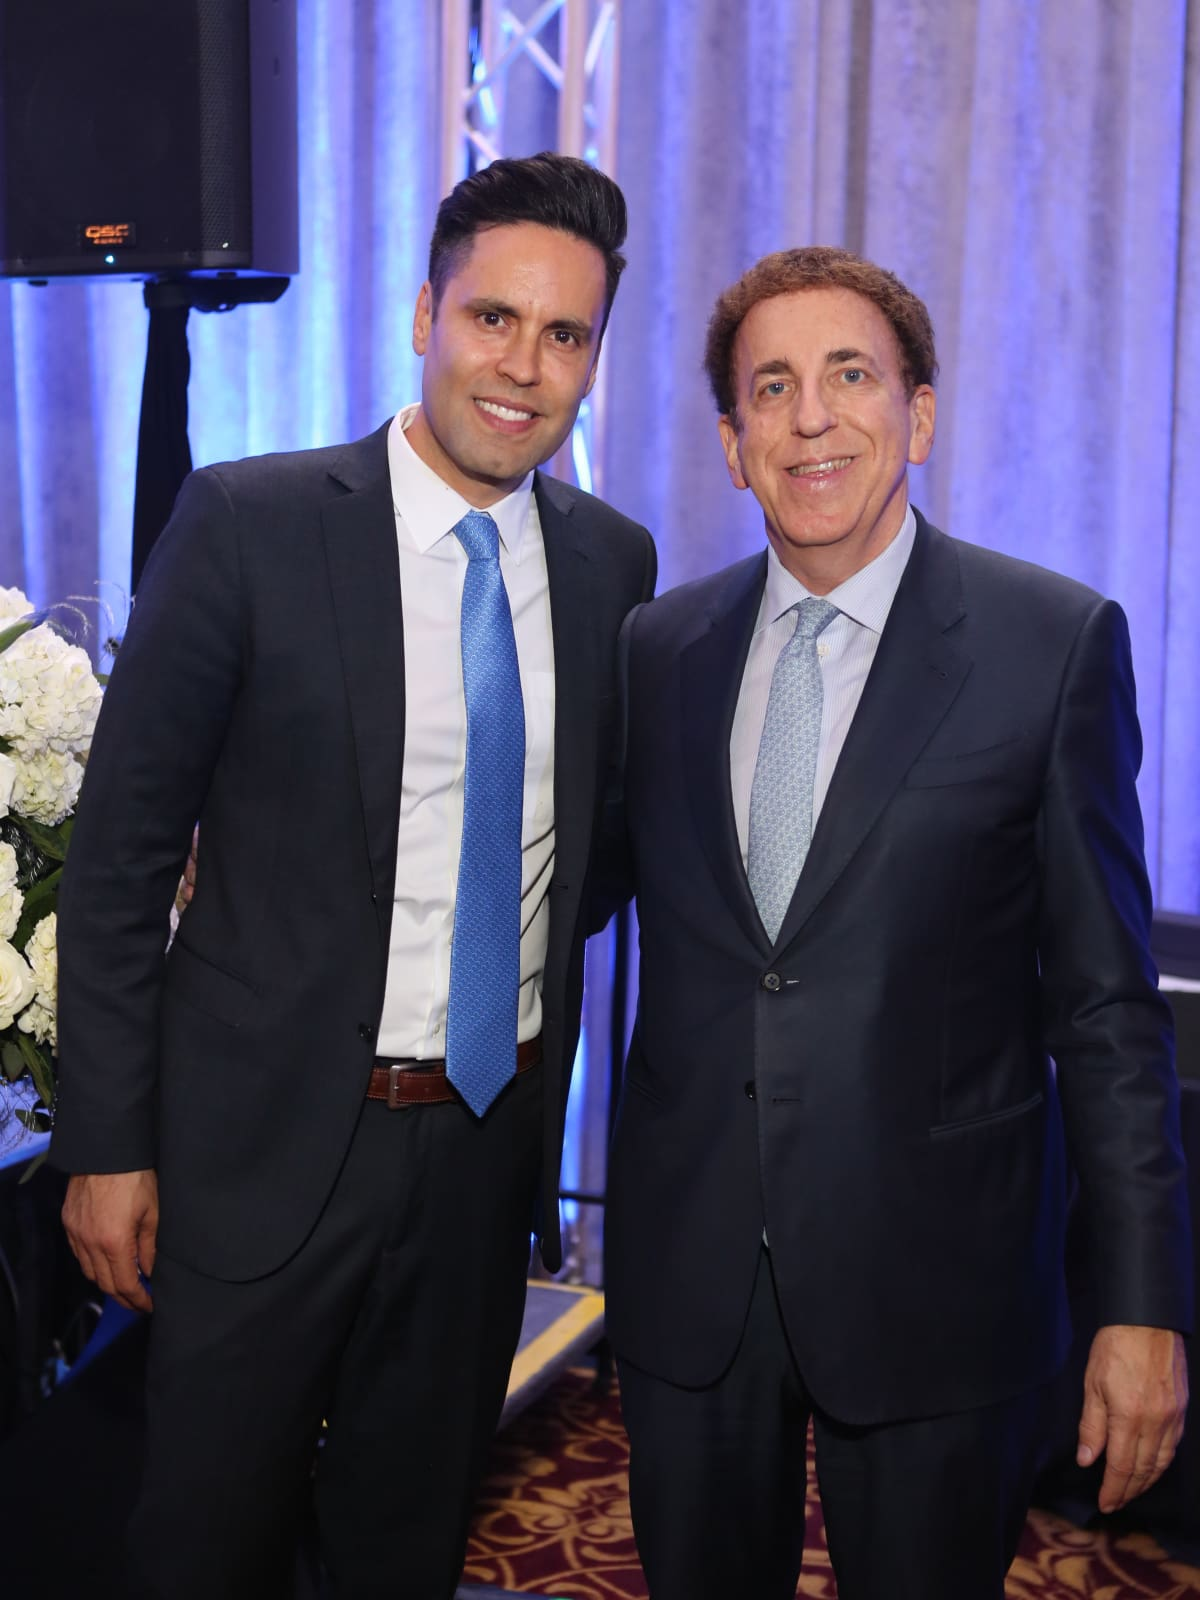 Blue Cure Gala, April 2016, Gabe Canales, Dr. Dean Ornish